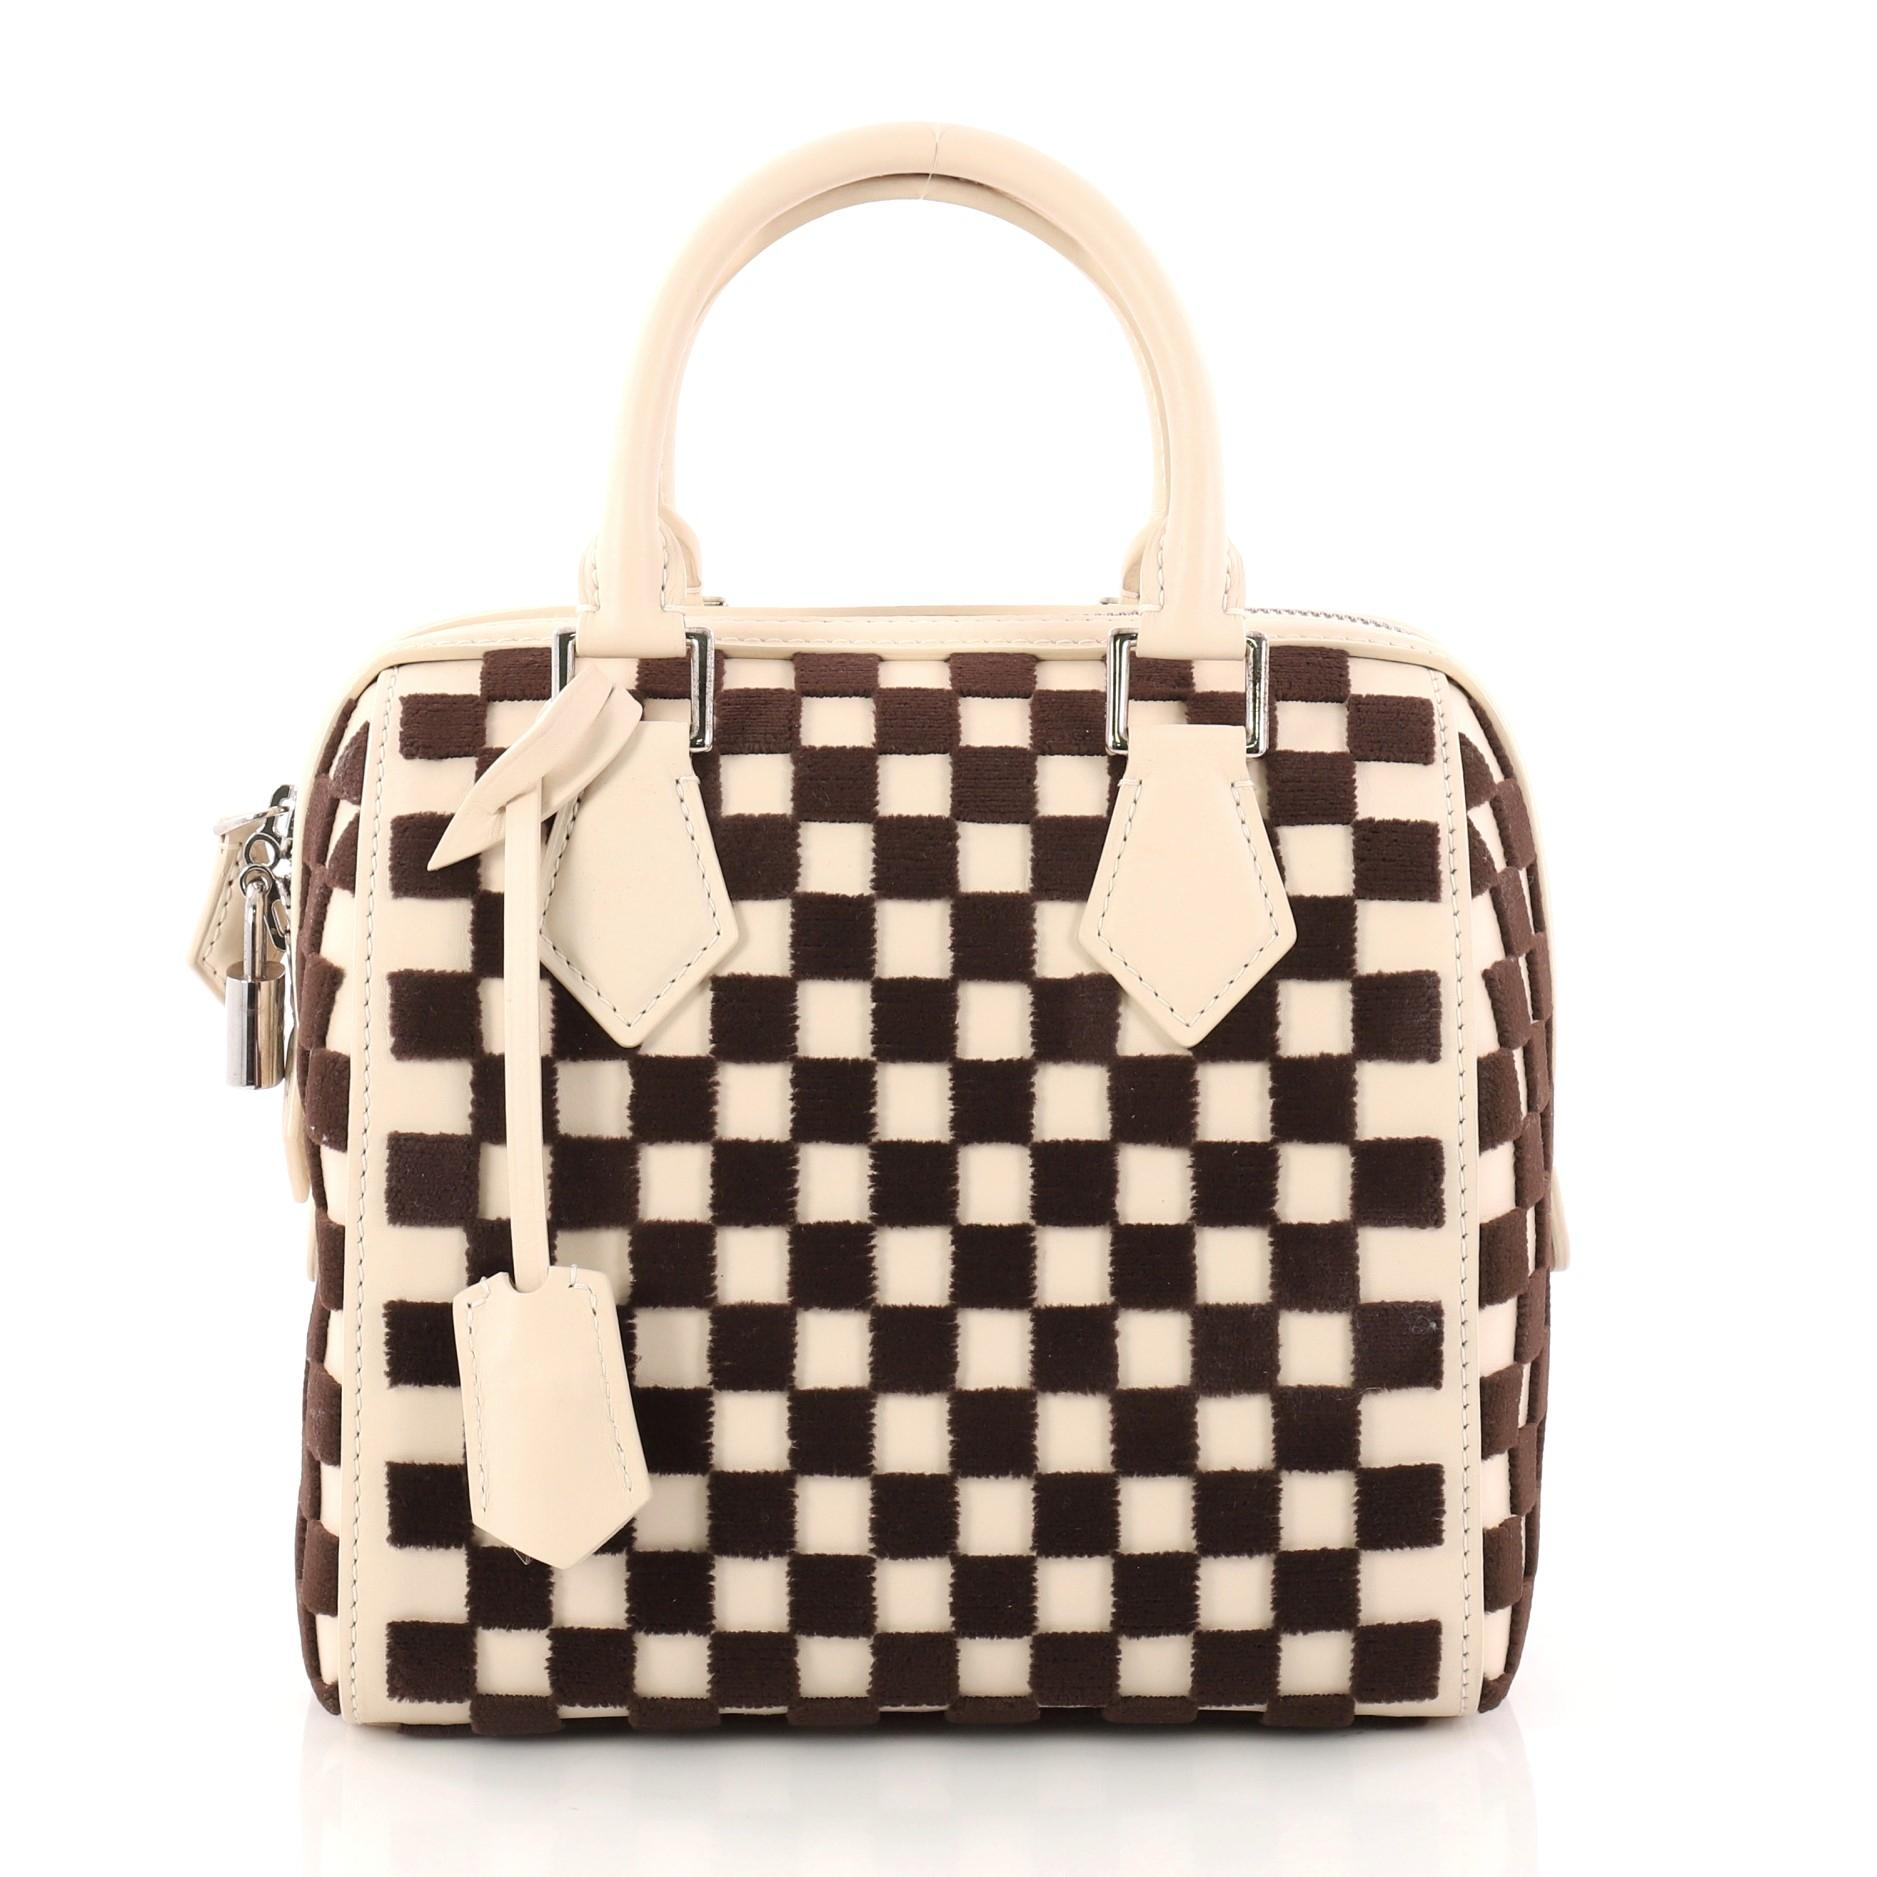 Louis Vuitton Speedy Cube Bag Damier Cubic Leather And Velvet Pm ye62v